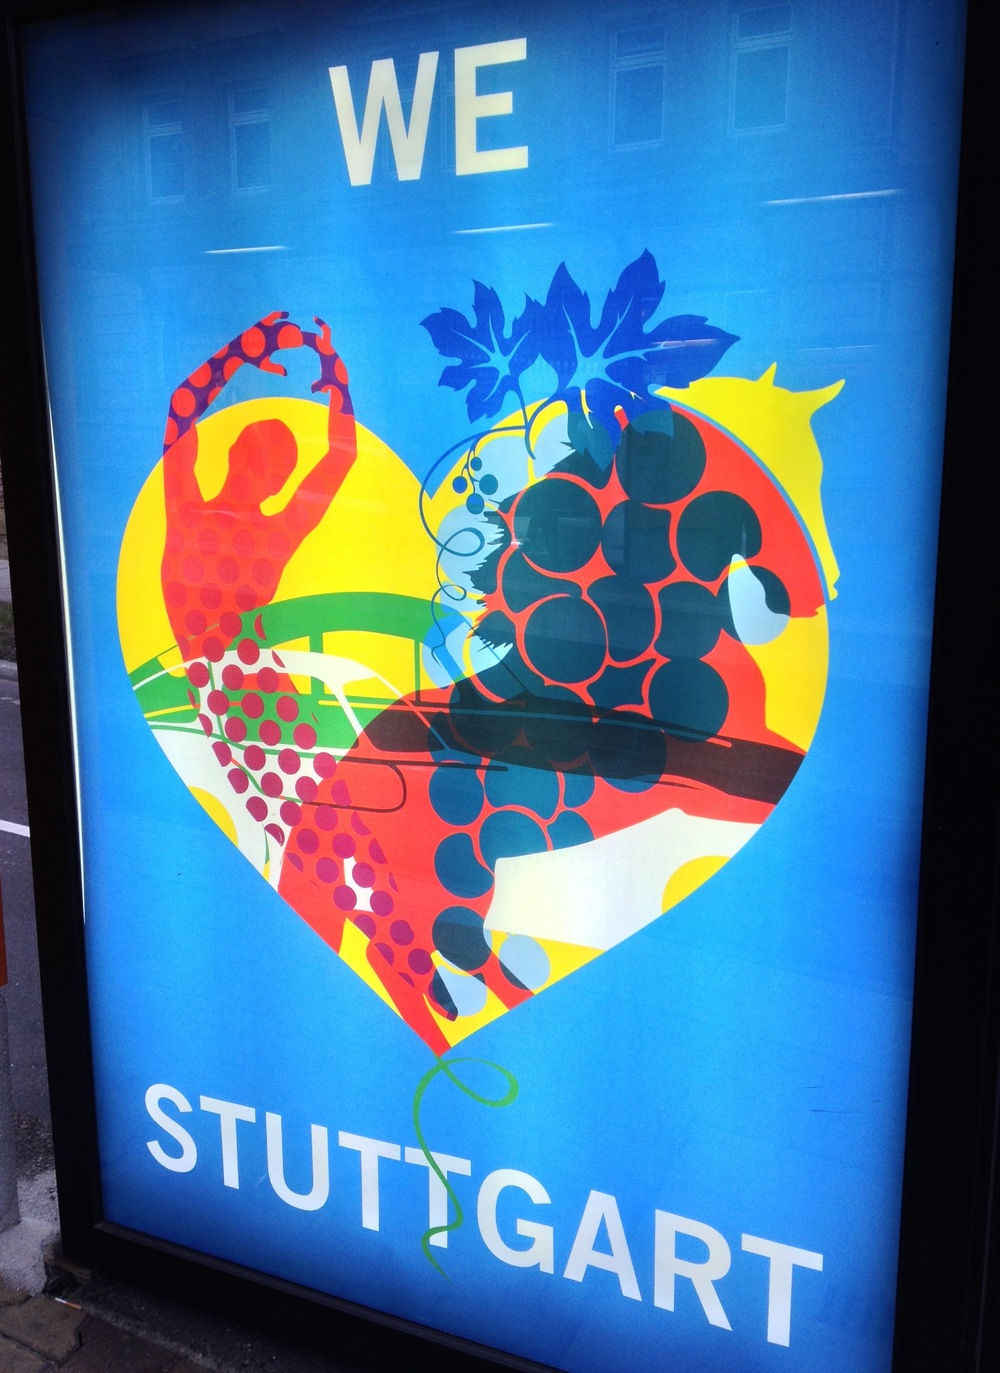 A recent poster promoting the city